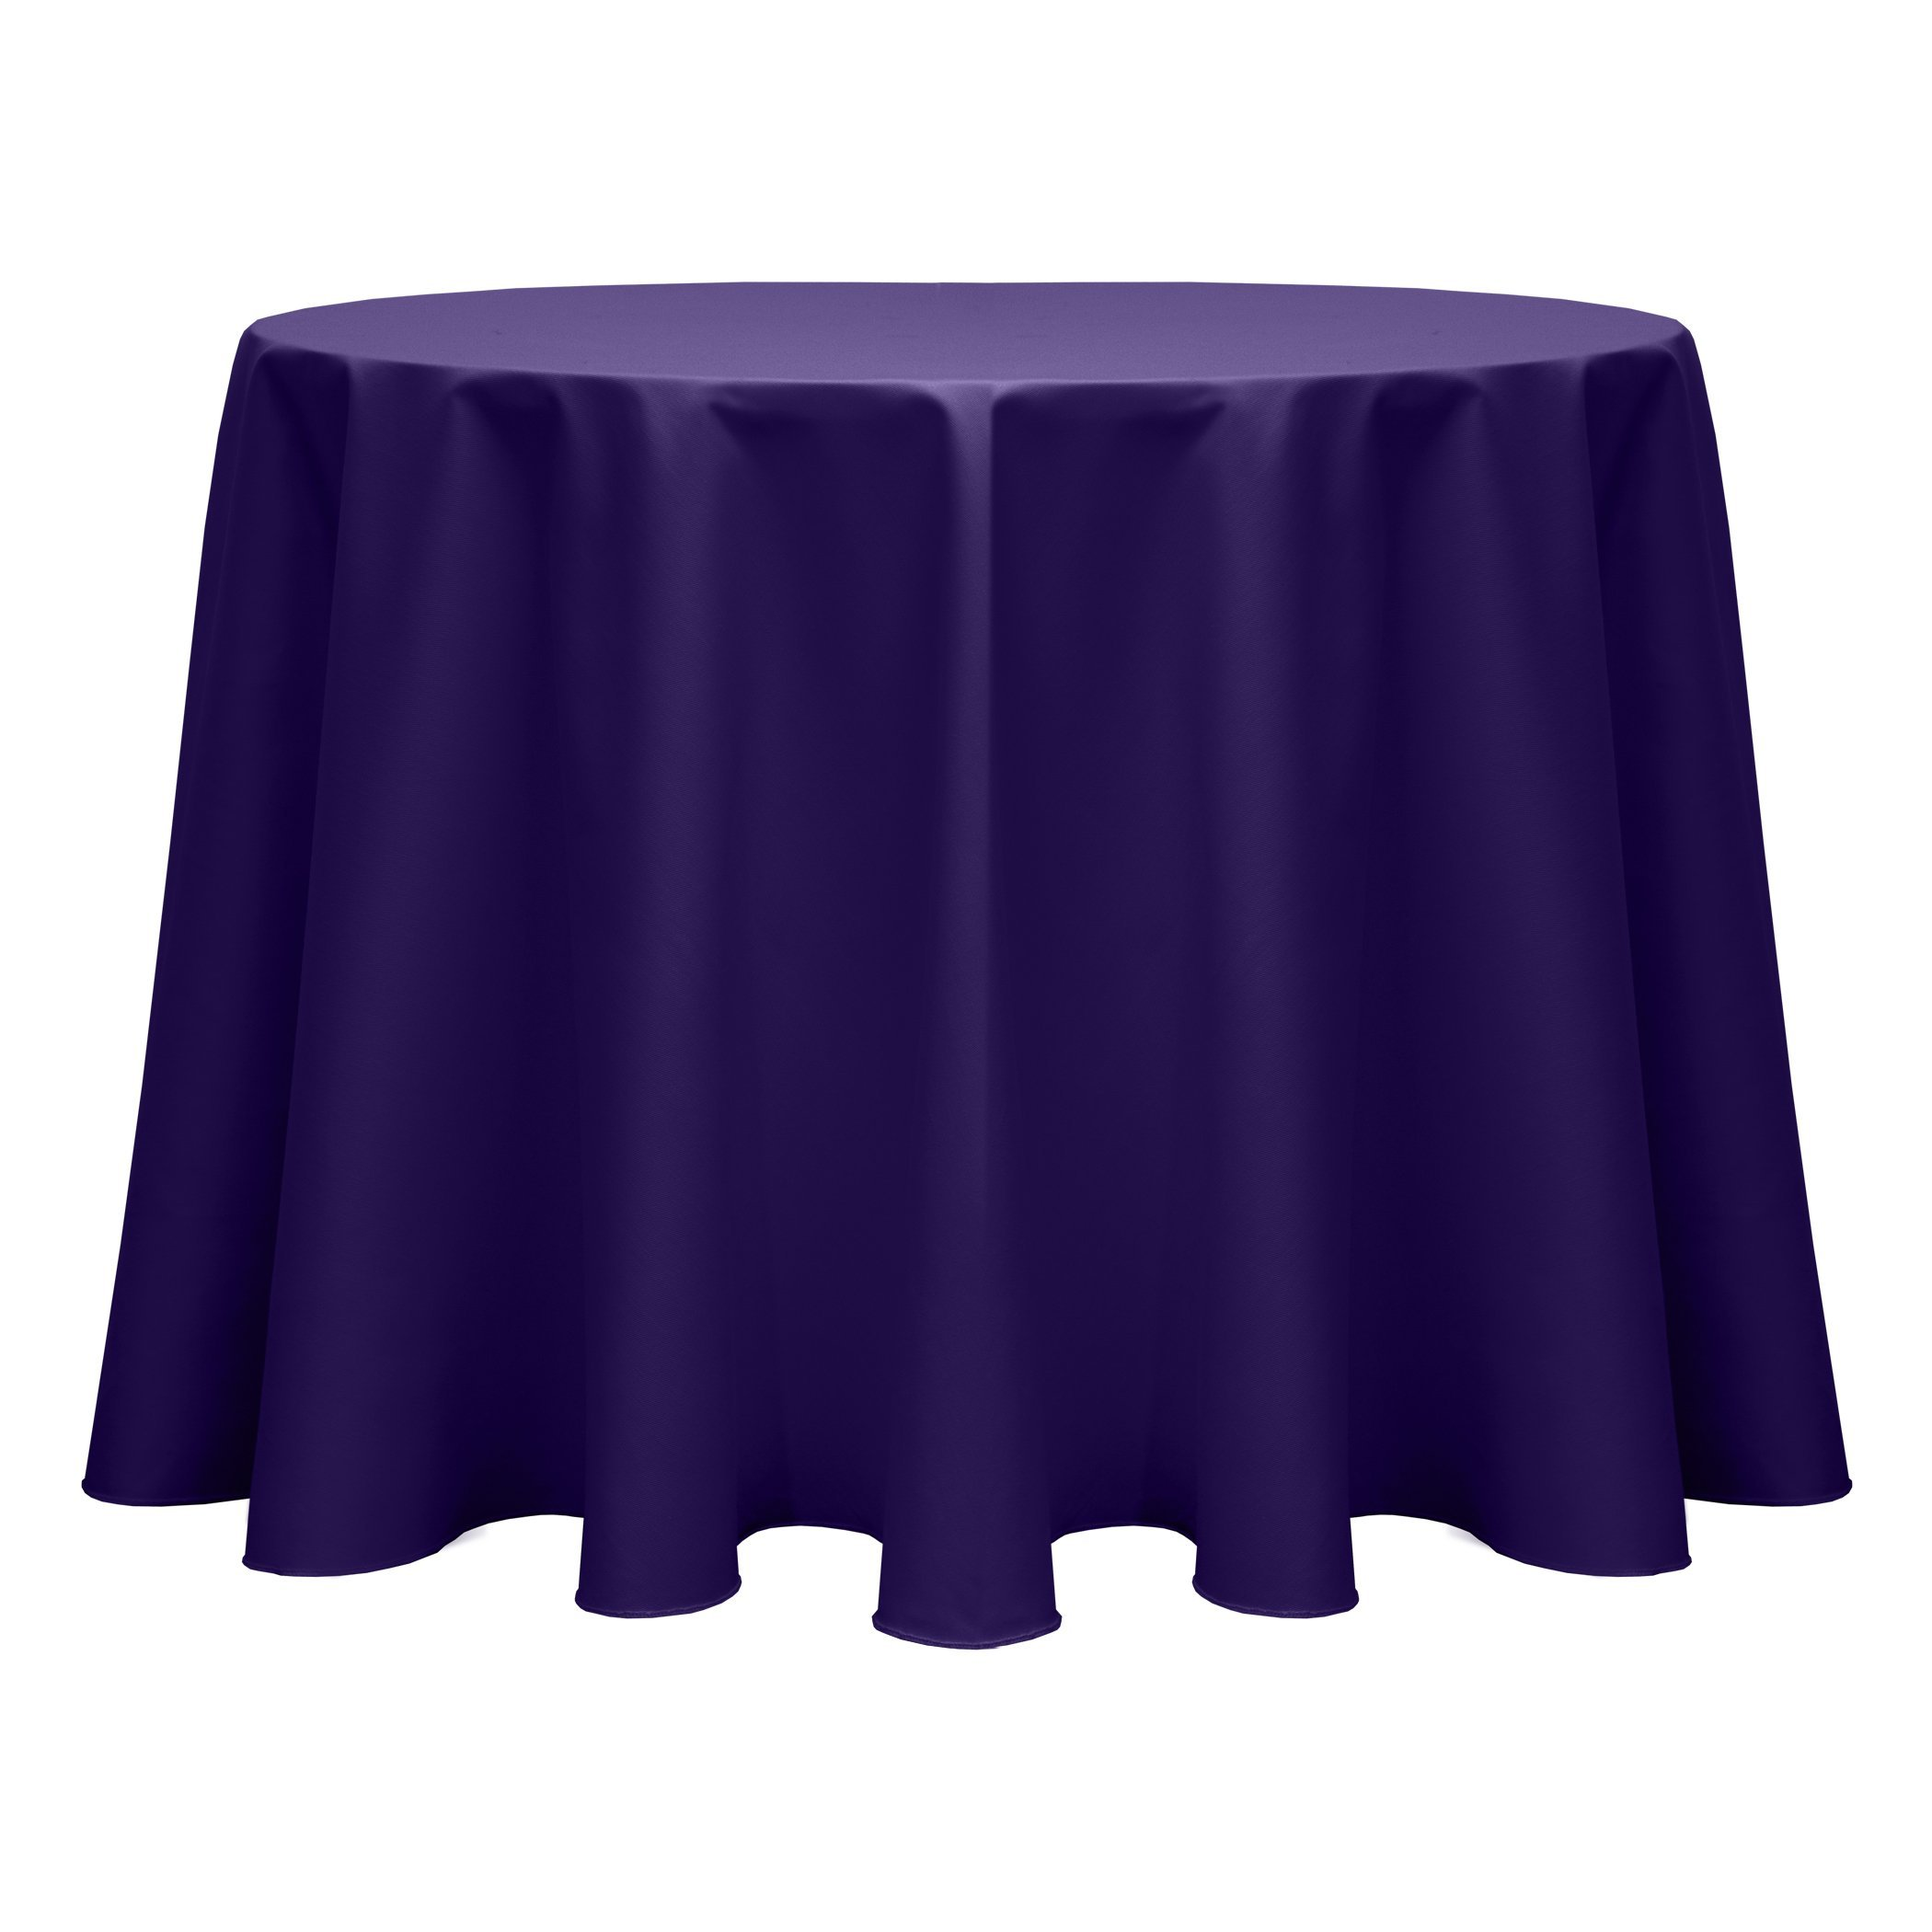 Ultimate Textile (55 Pack) Poly-cotton Twill 60-Inch Round Tablecloth - for Restaurant and Catering, Hotel or Home Dining use, Purple